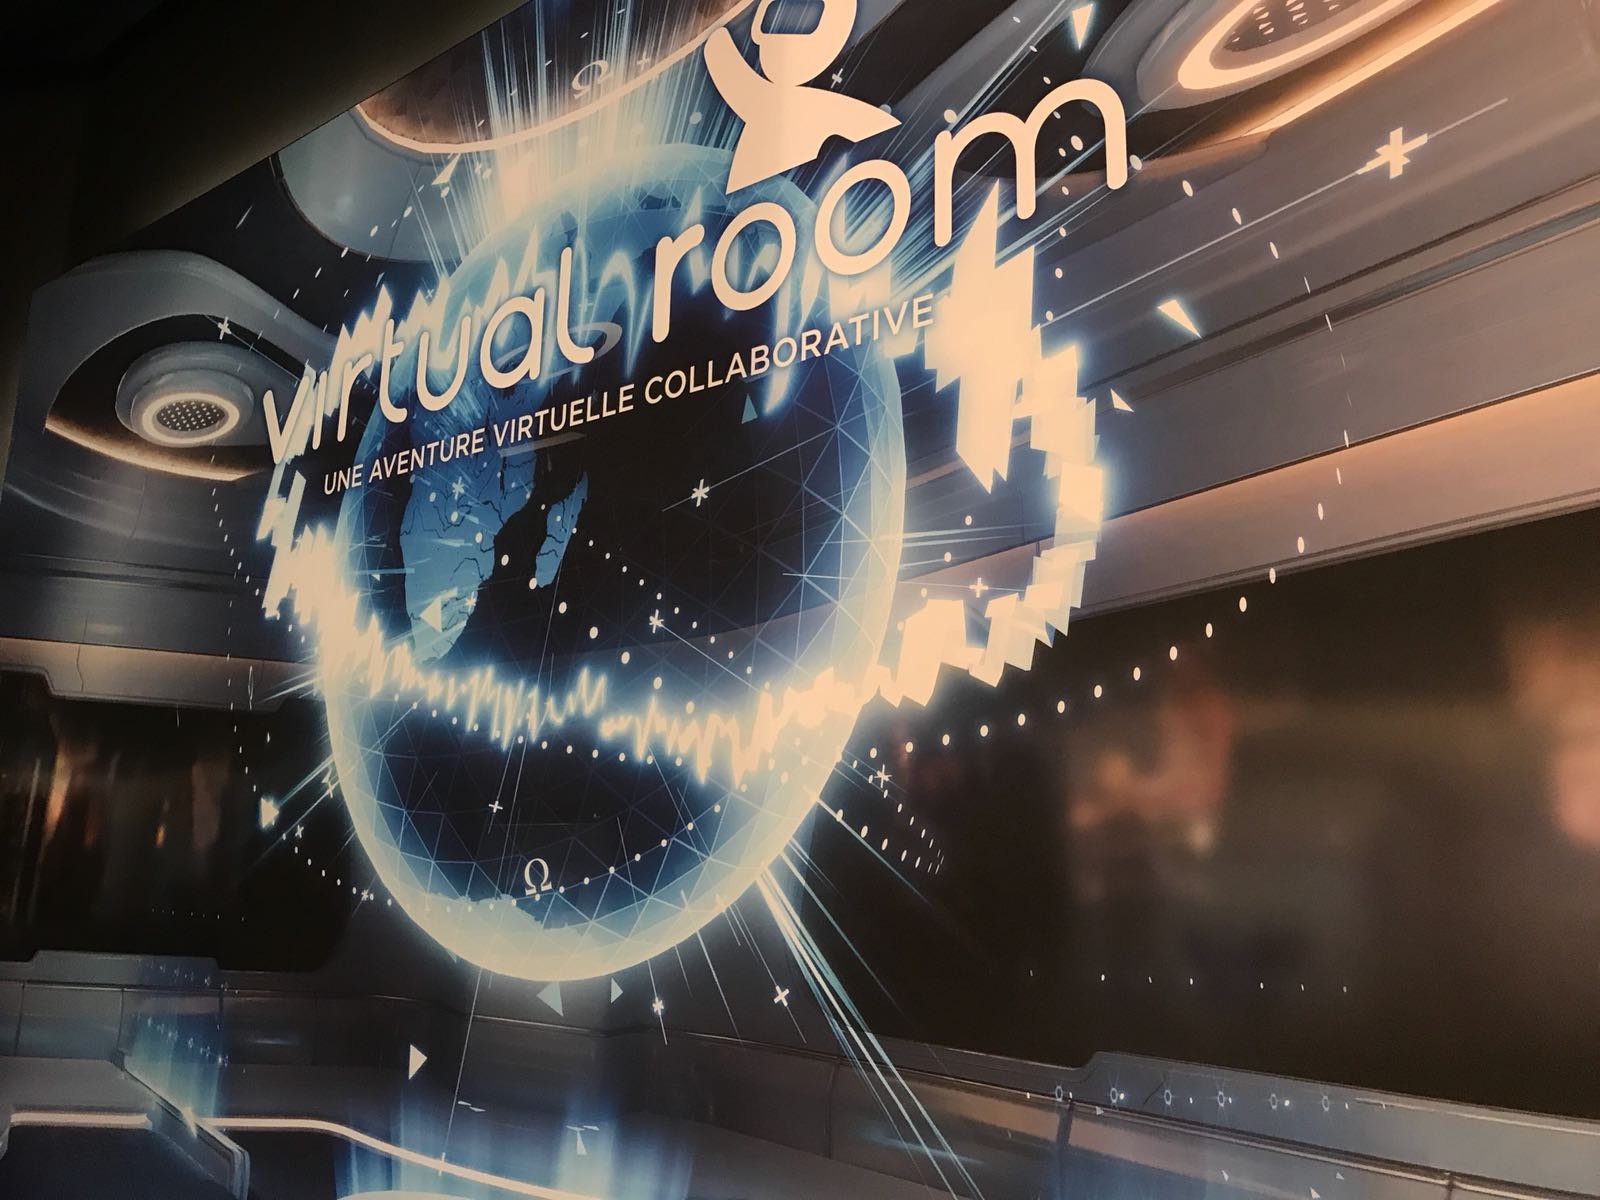 Virtual Room logo on the wall